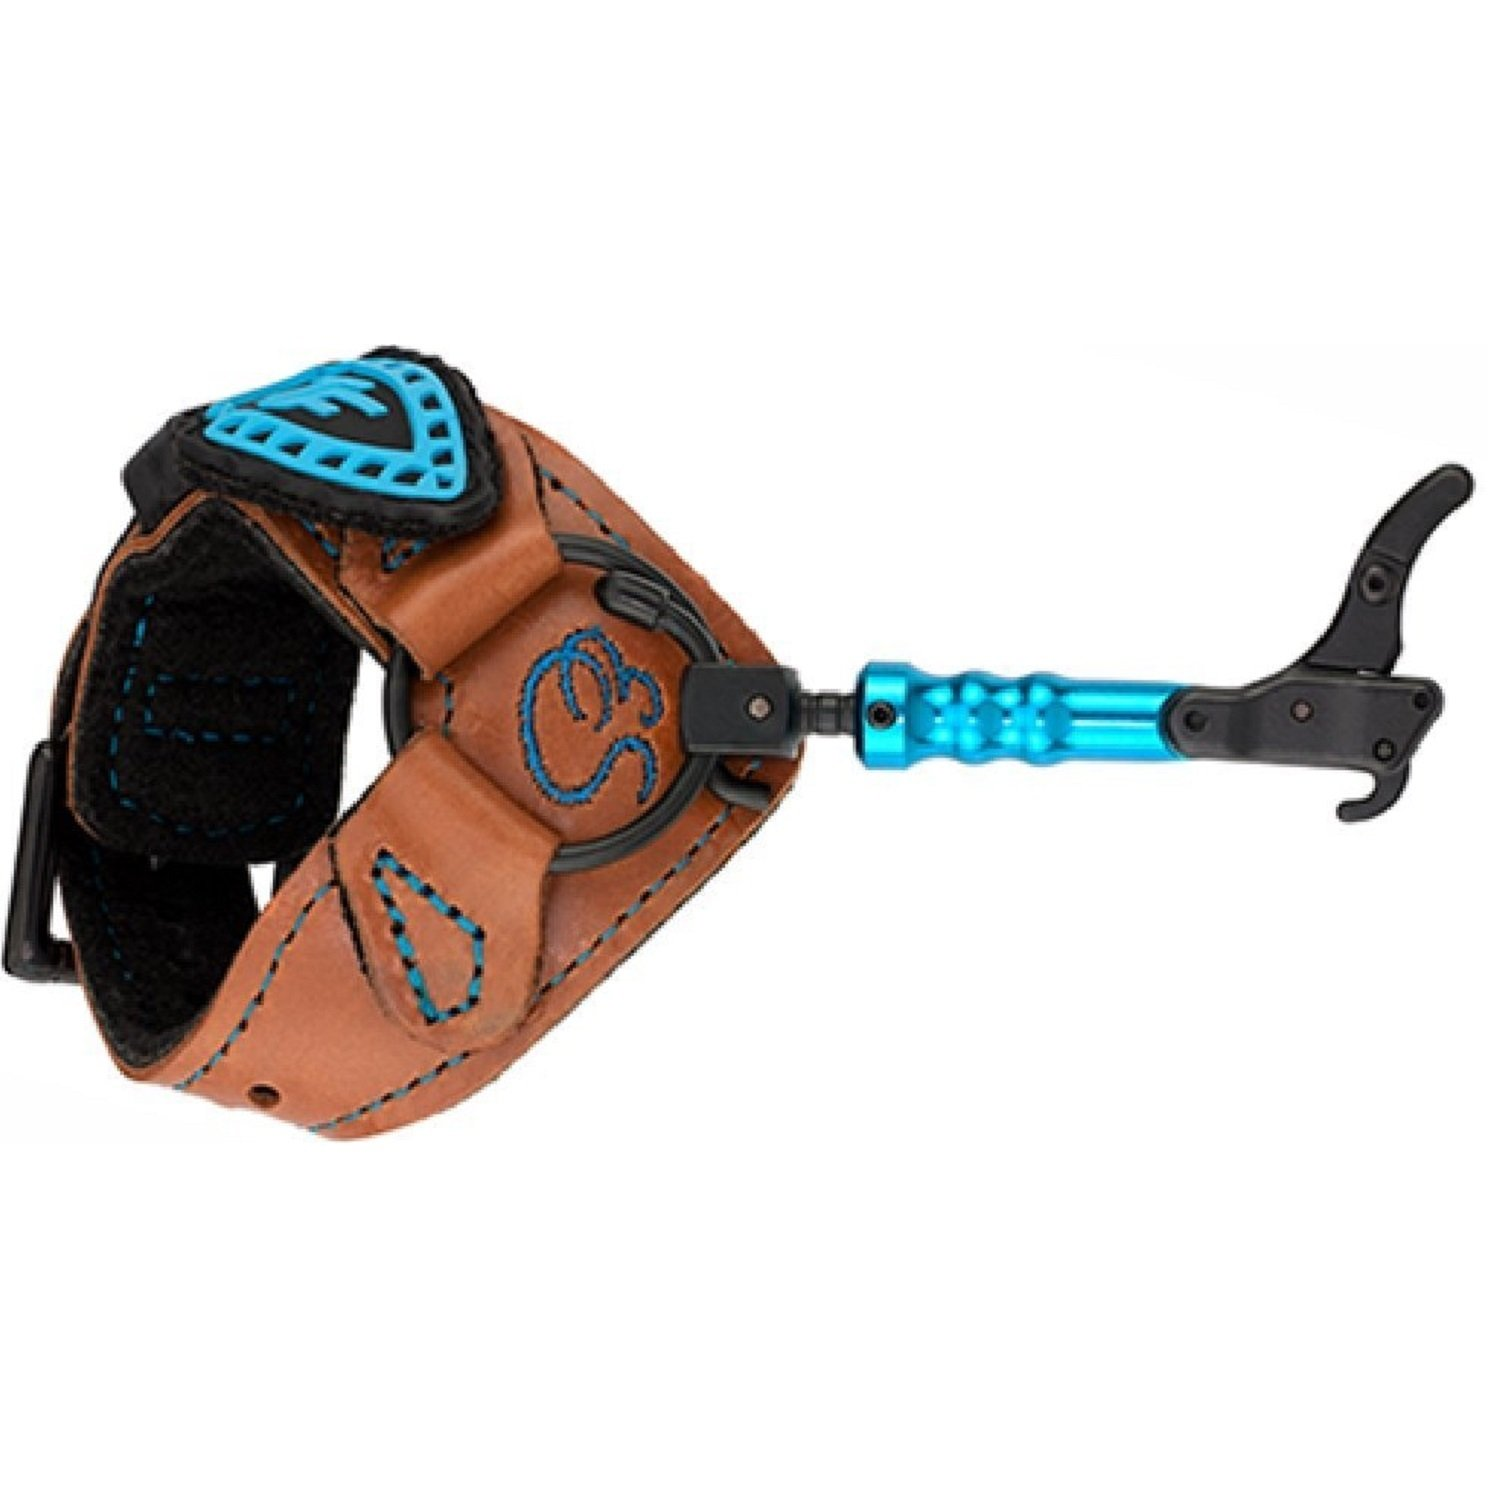 Trufire Eva Shockey Signature Series Archery Bow Release, One Size